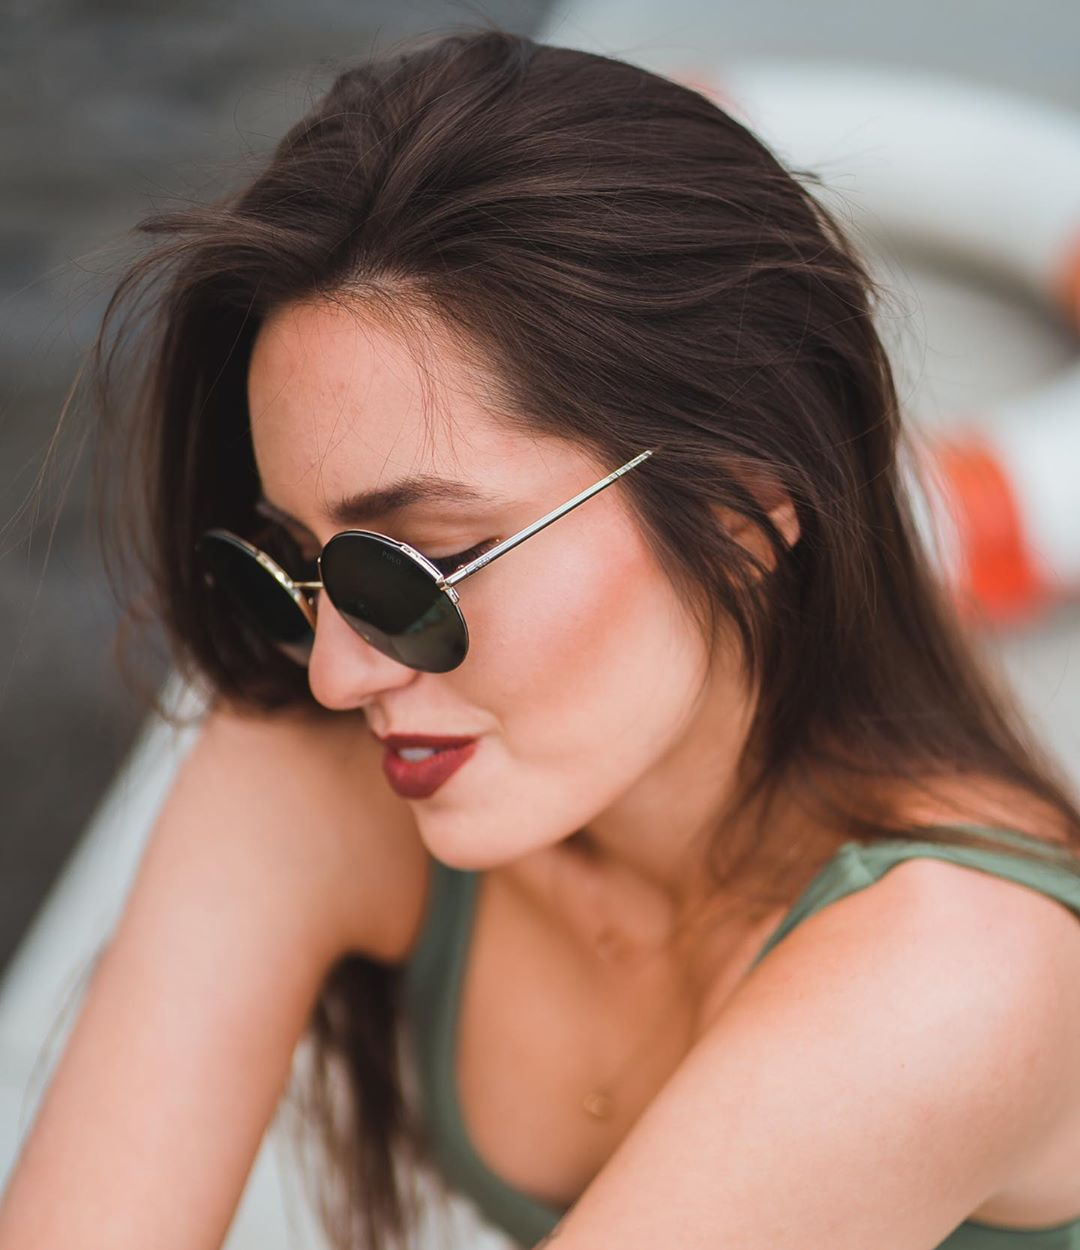 Get ready for your beach upgrade! Polo #ralphlauren sunglasses - now on #Lentiamo